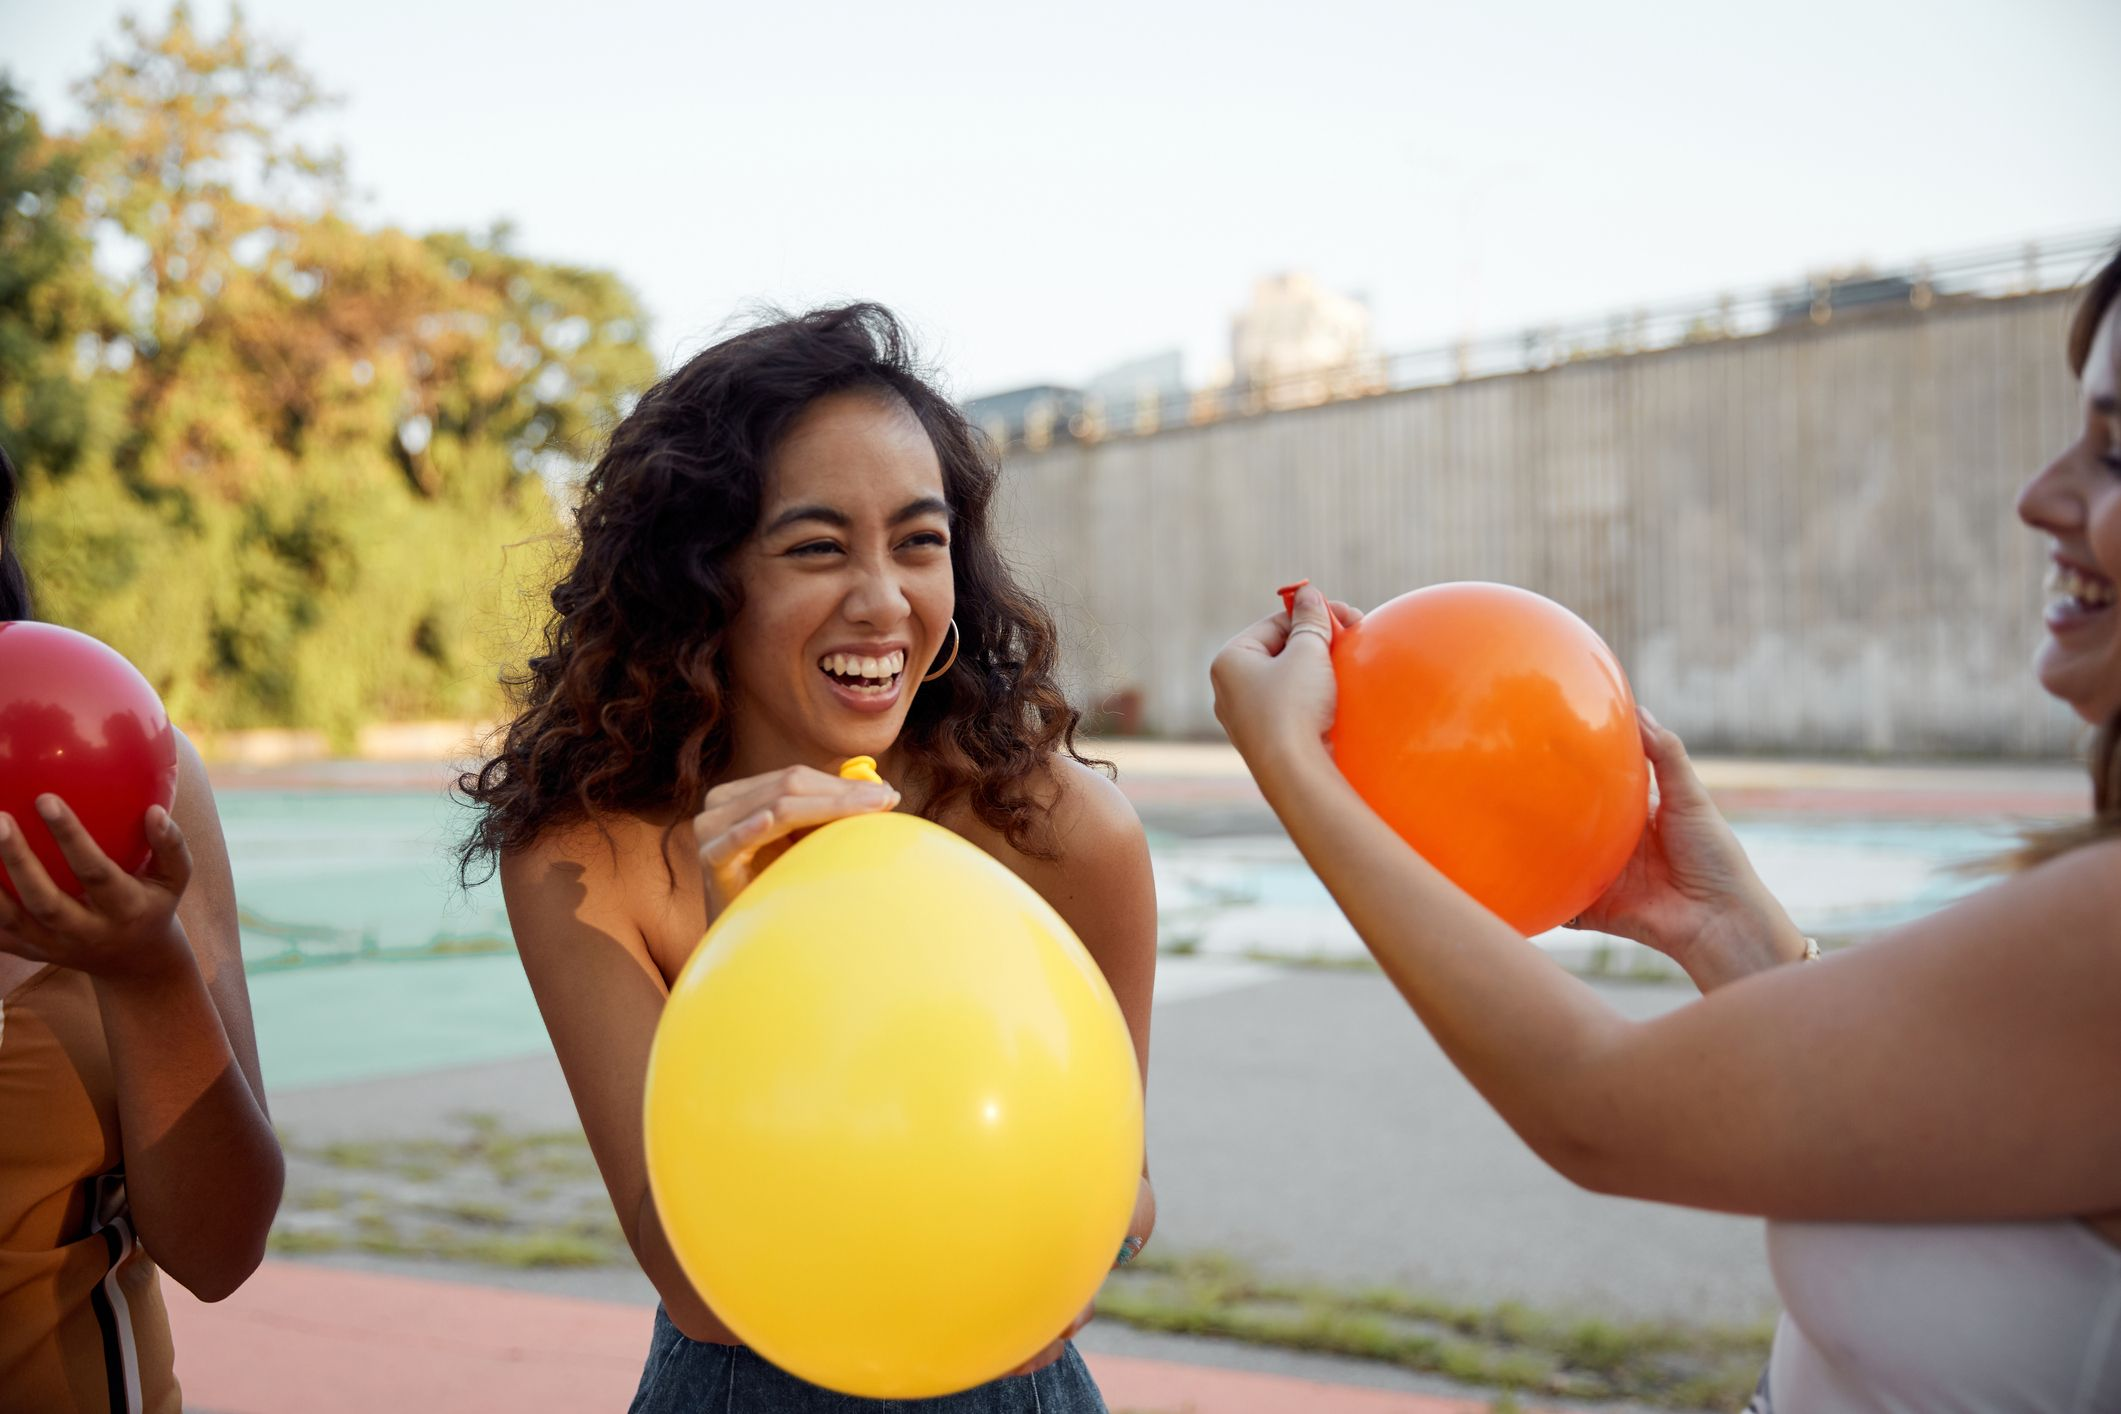 You Can Inhale Vodka From Balloons at Bars Now